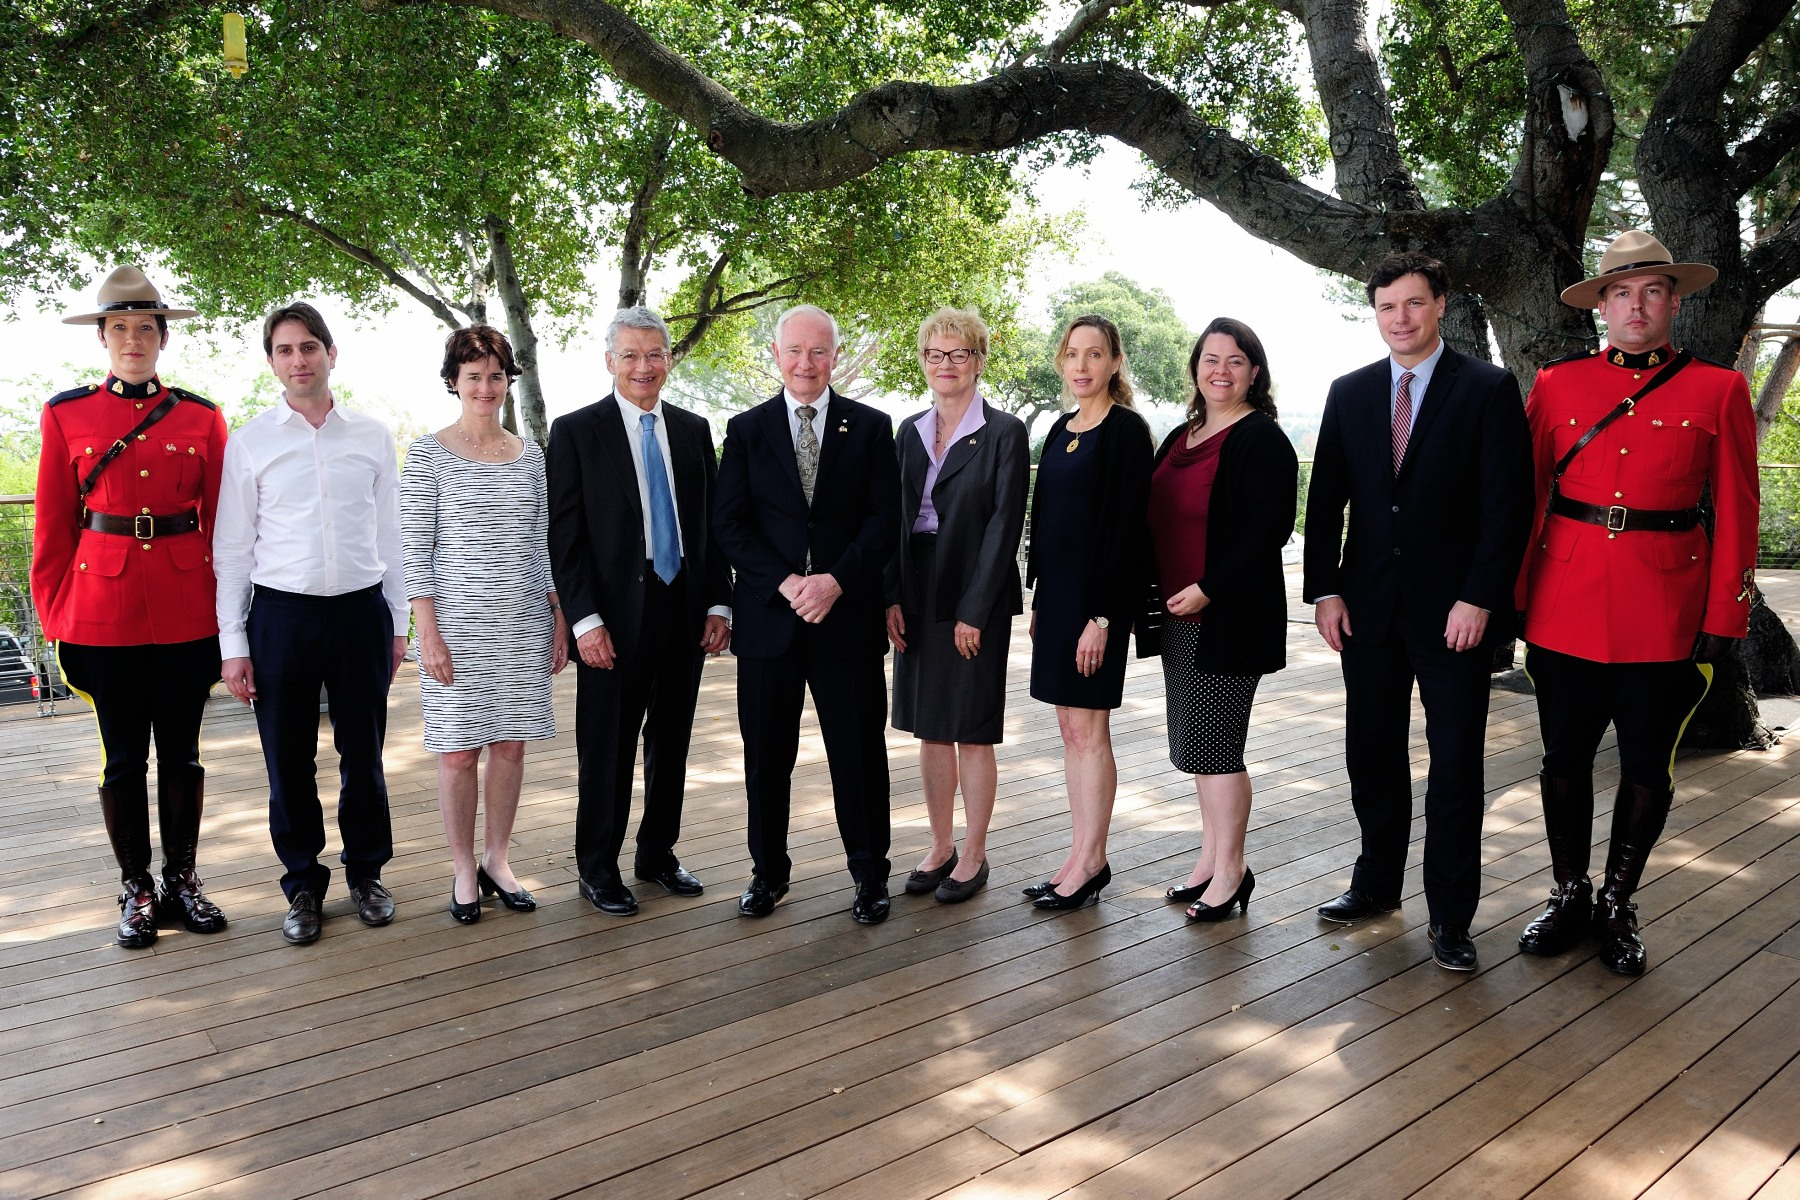 Photo of His Excellency with members of Stanford PACS and other American organizations.